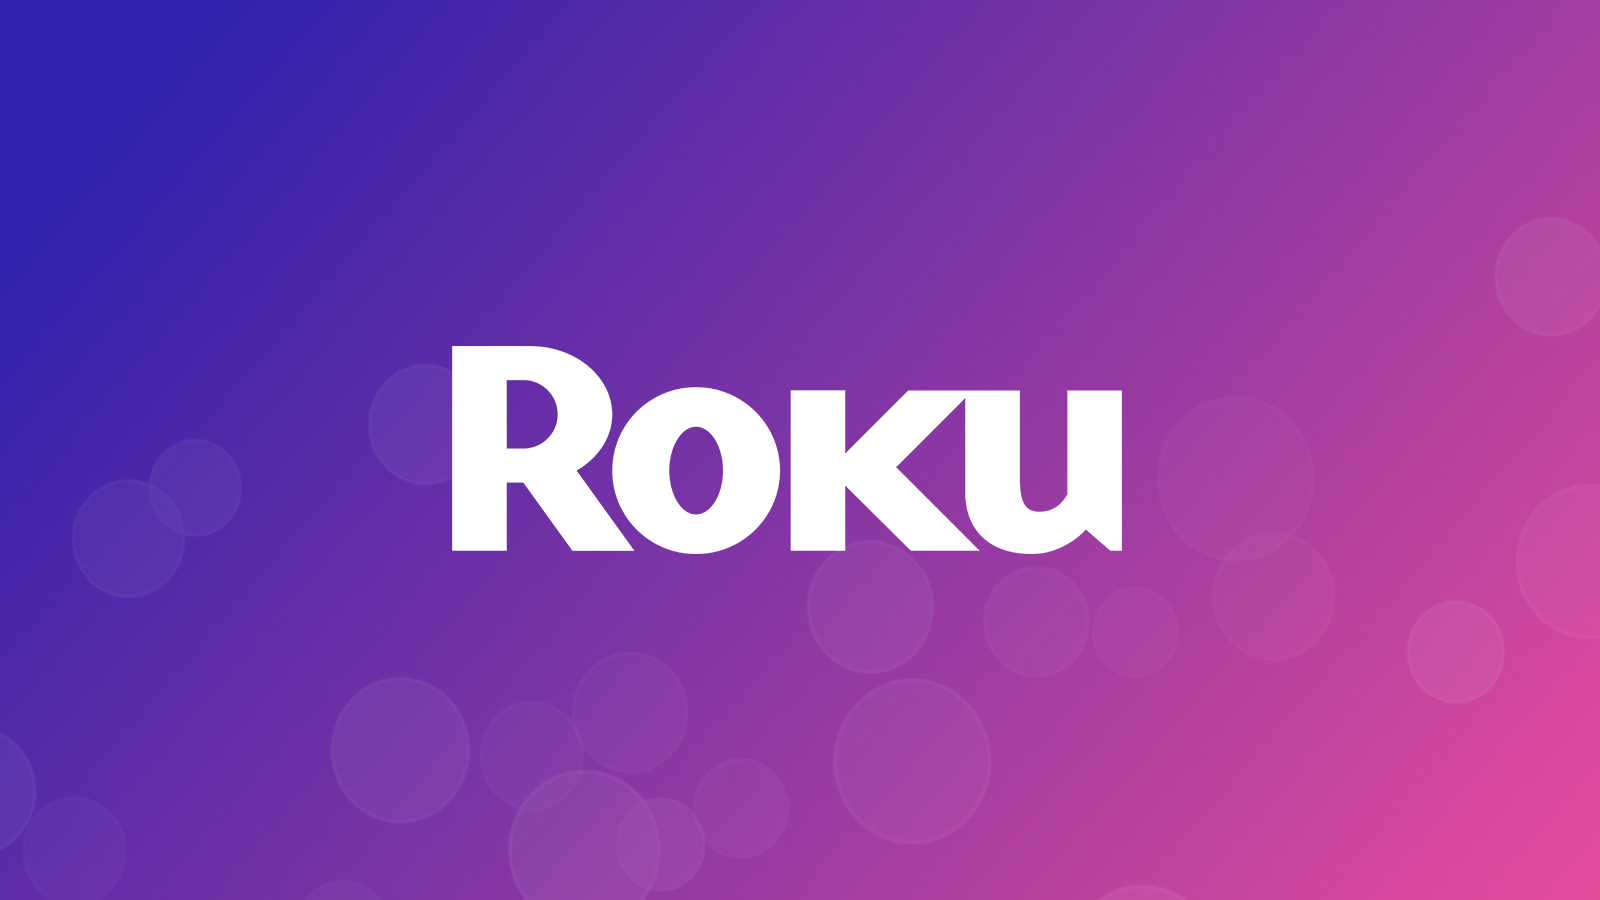 Google apparently did ask for special treatment from Roku according to a leaked email